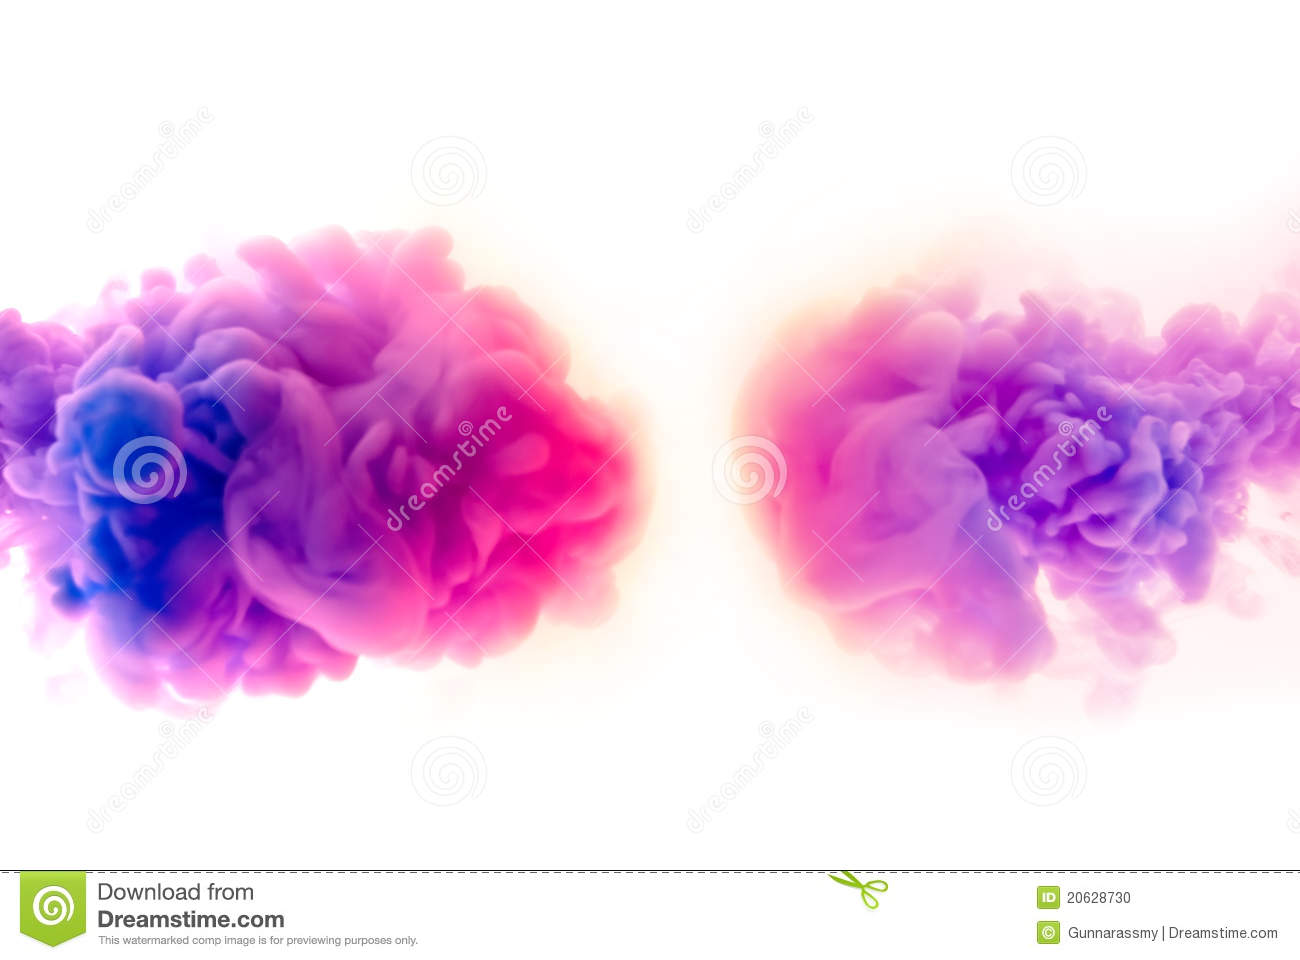 download the encyclopedia of origami the complete